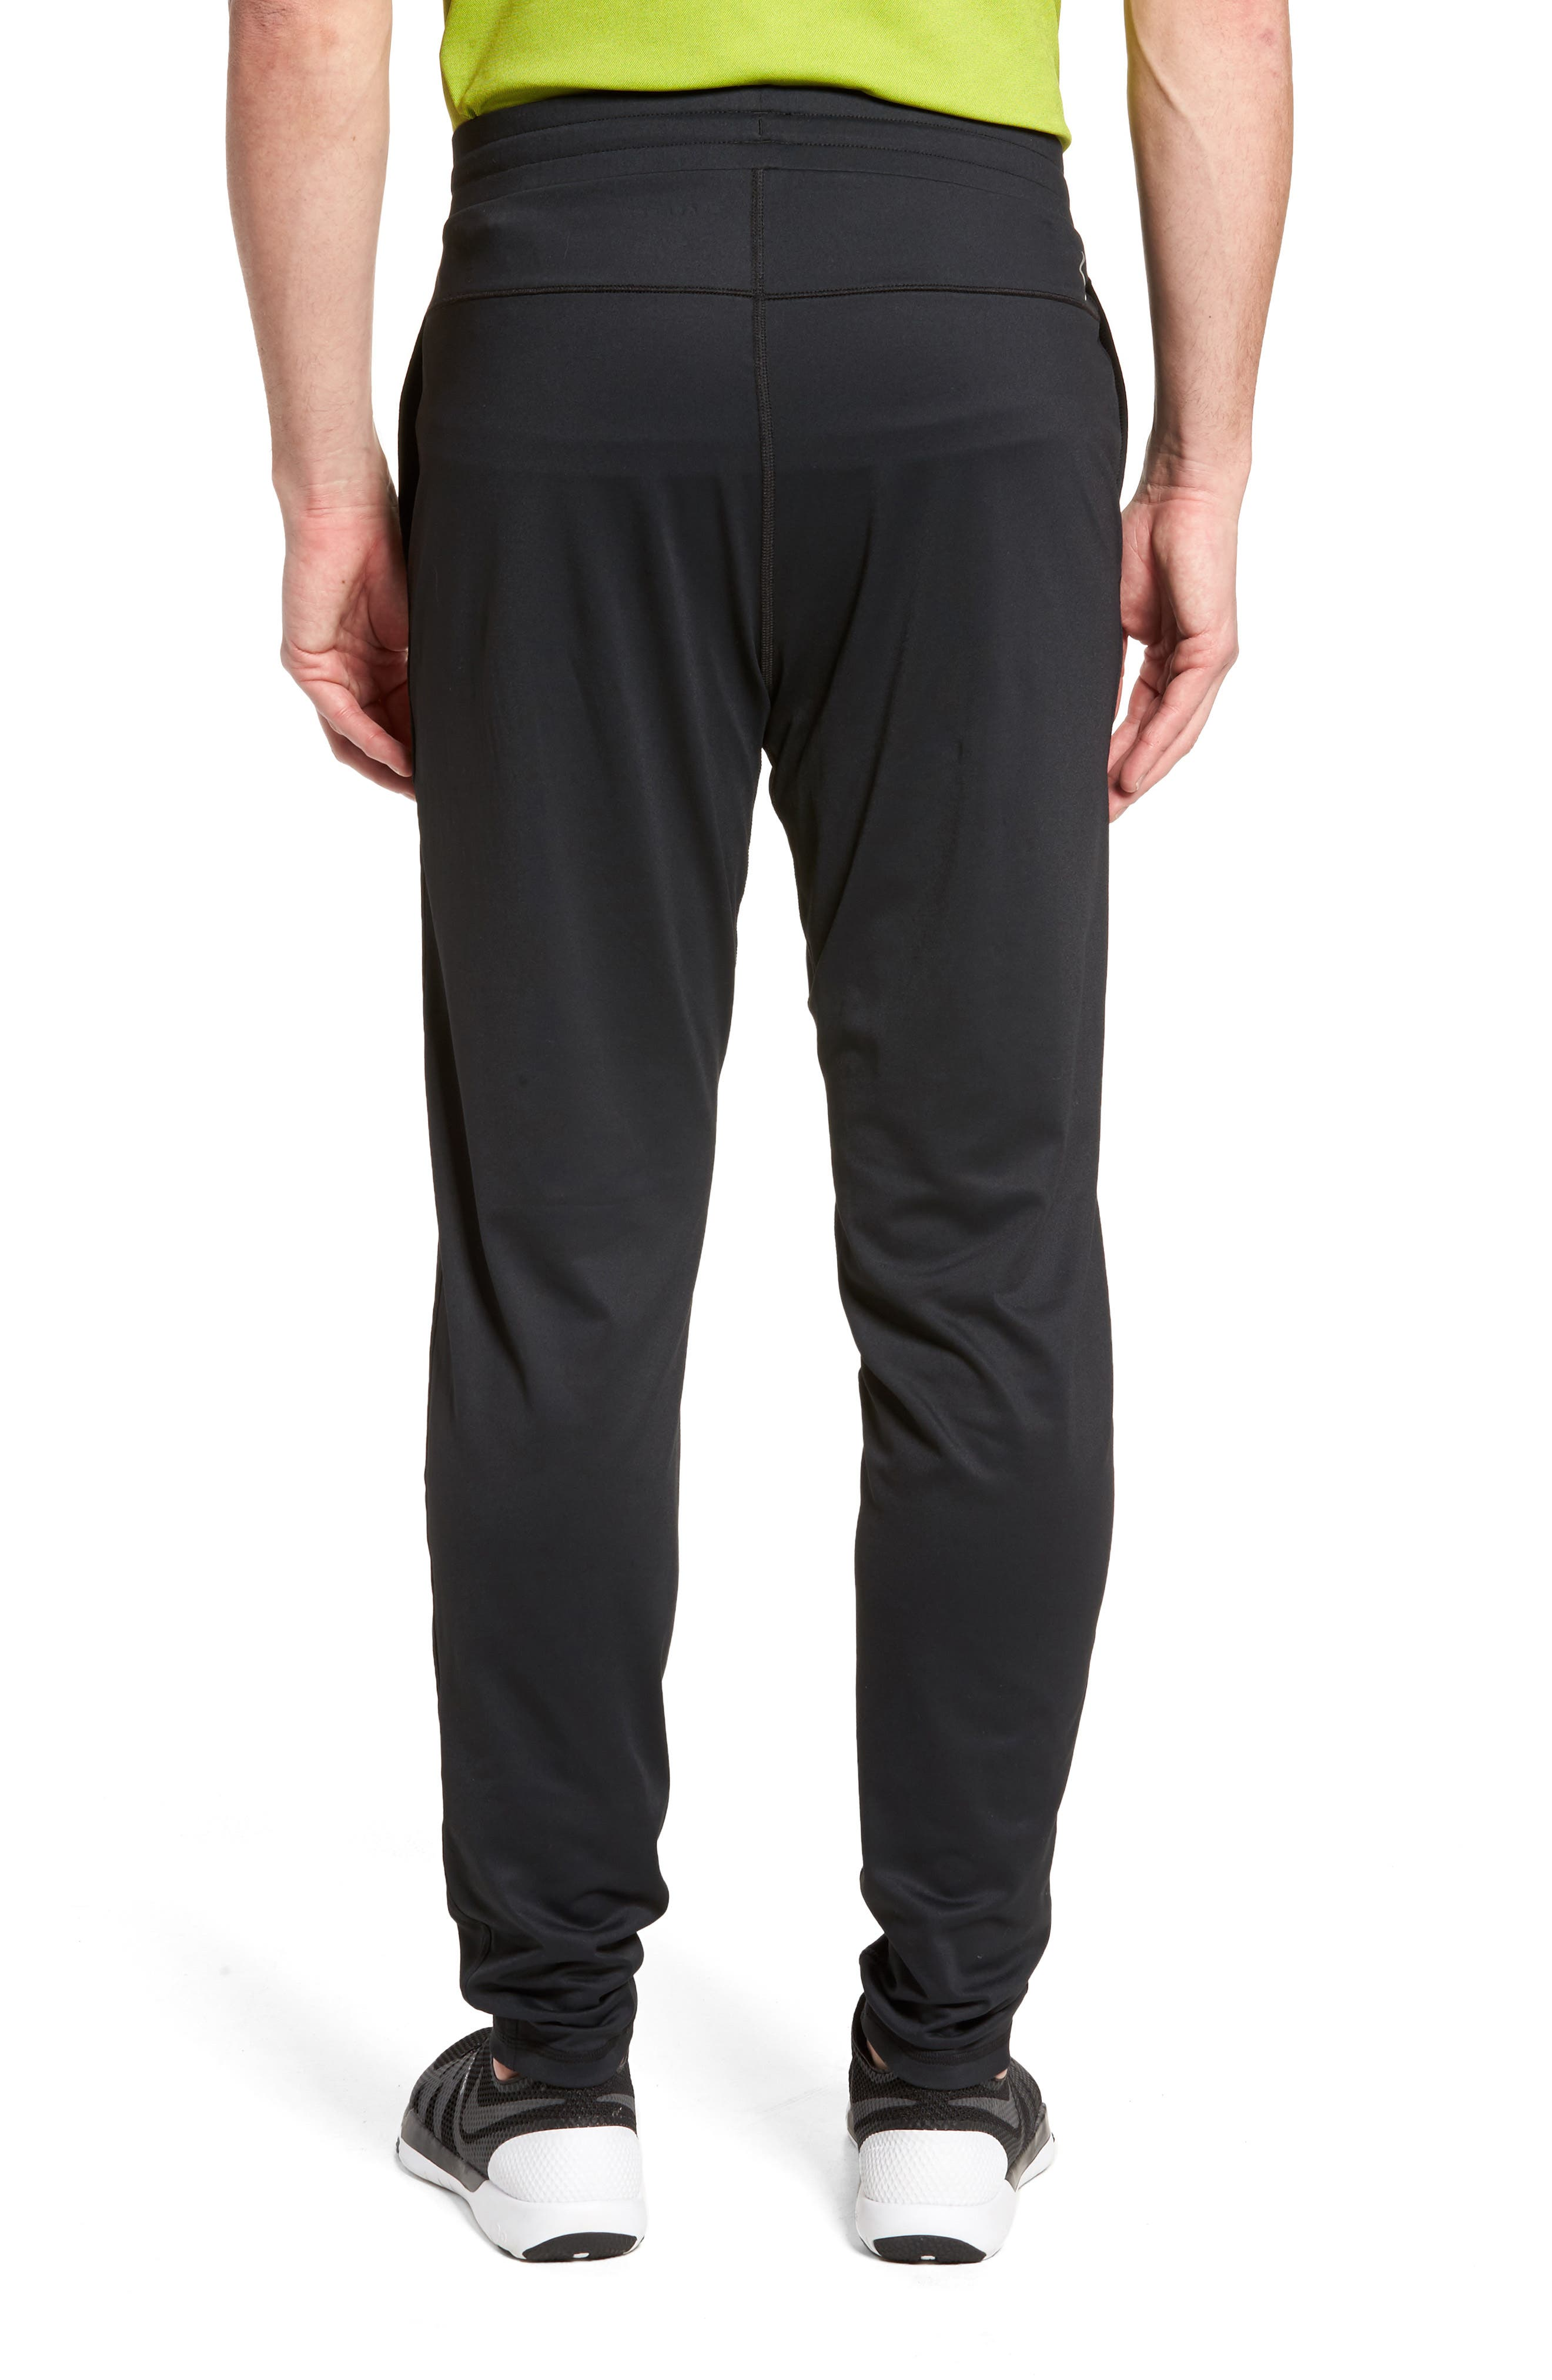 Go-To Slim Athletic Pants,                             Alternate thumbnail 2, color,                             001